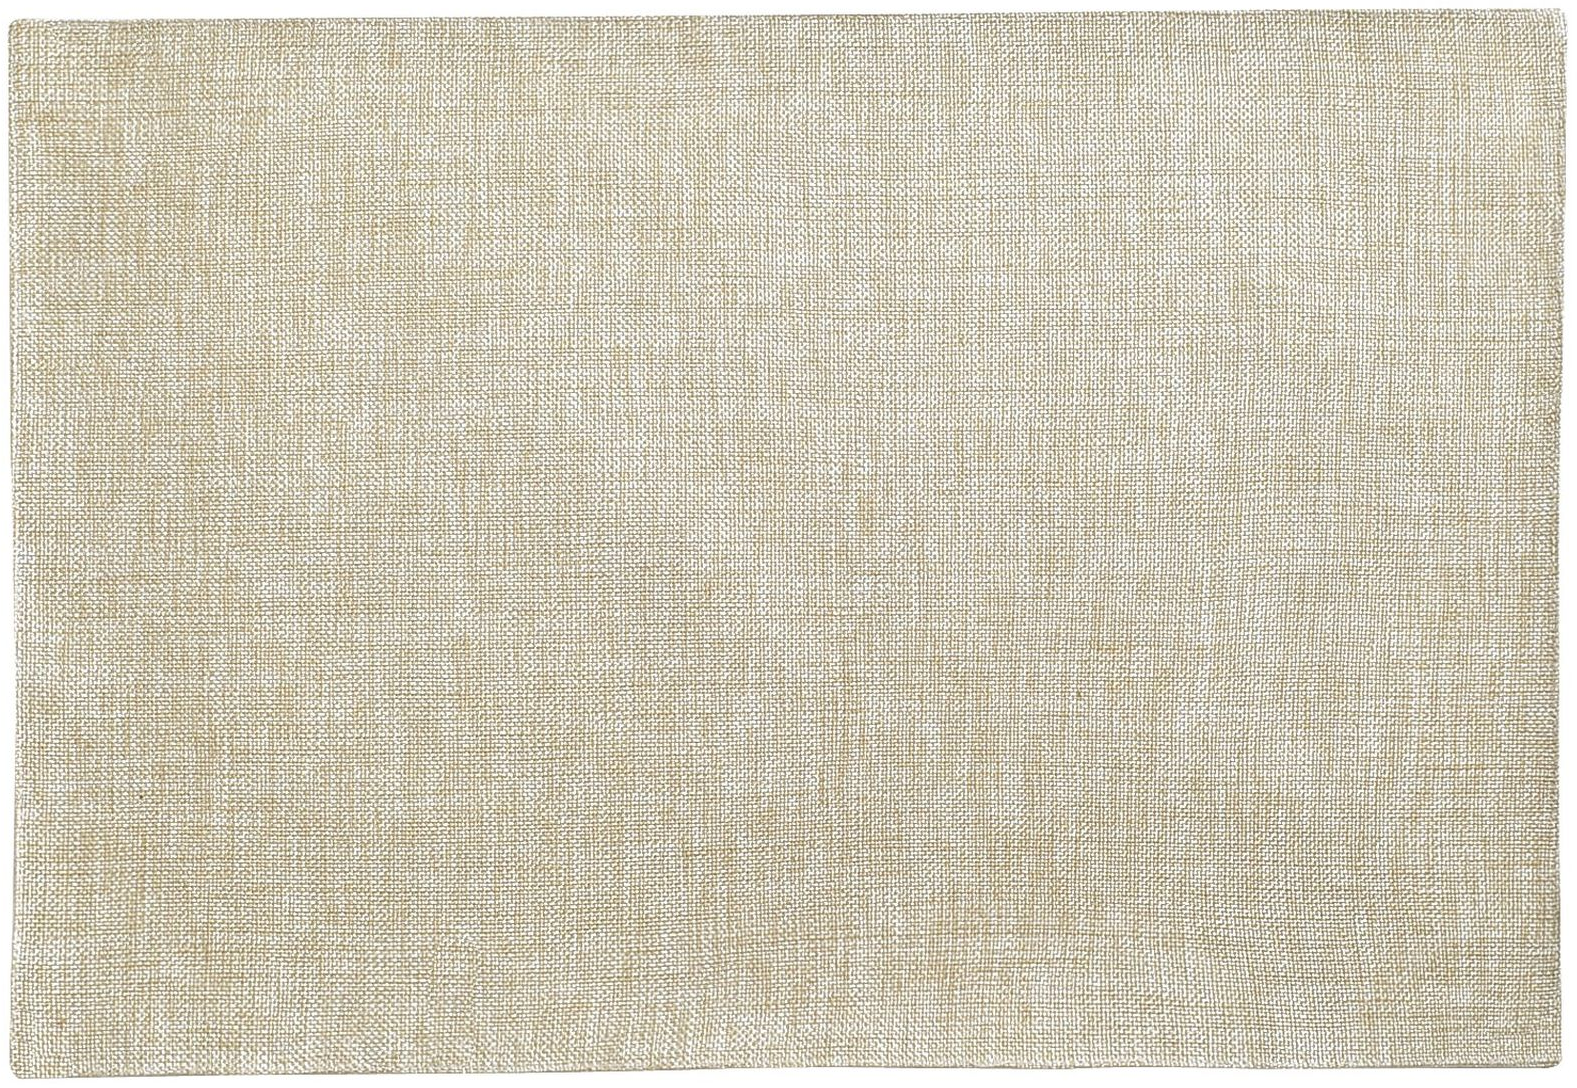 Woven Sheen Placemat - Champagne | Pier 1 Imports